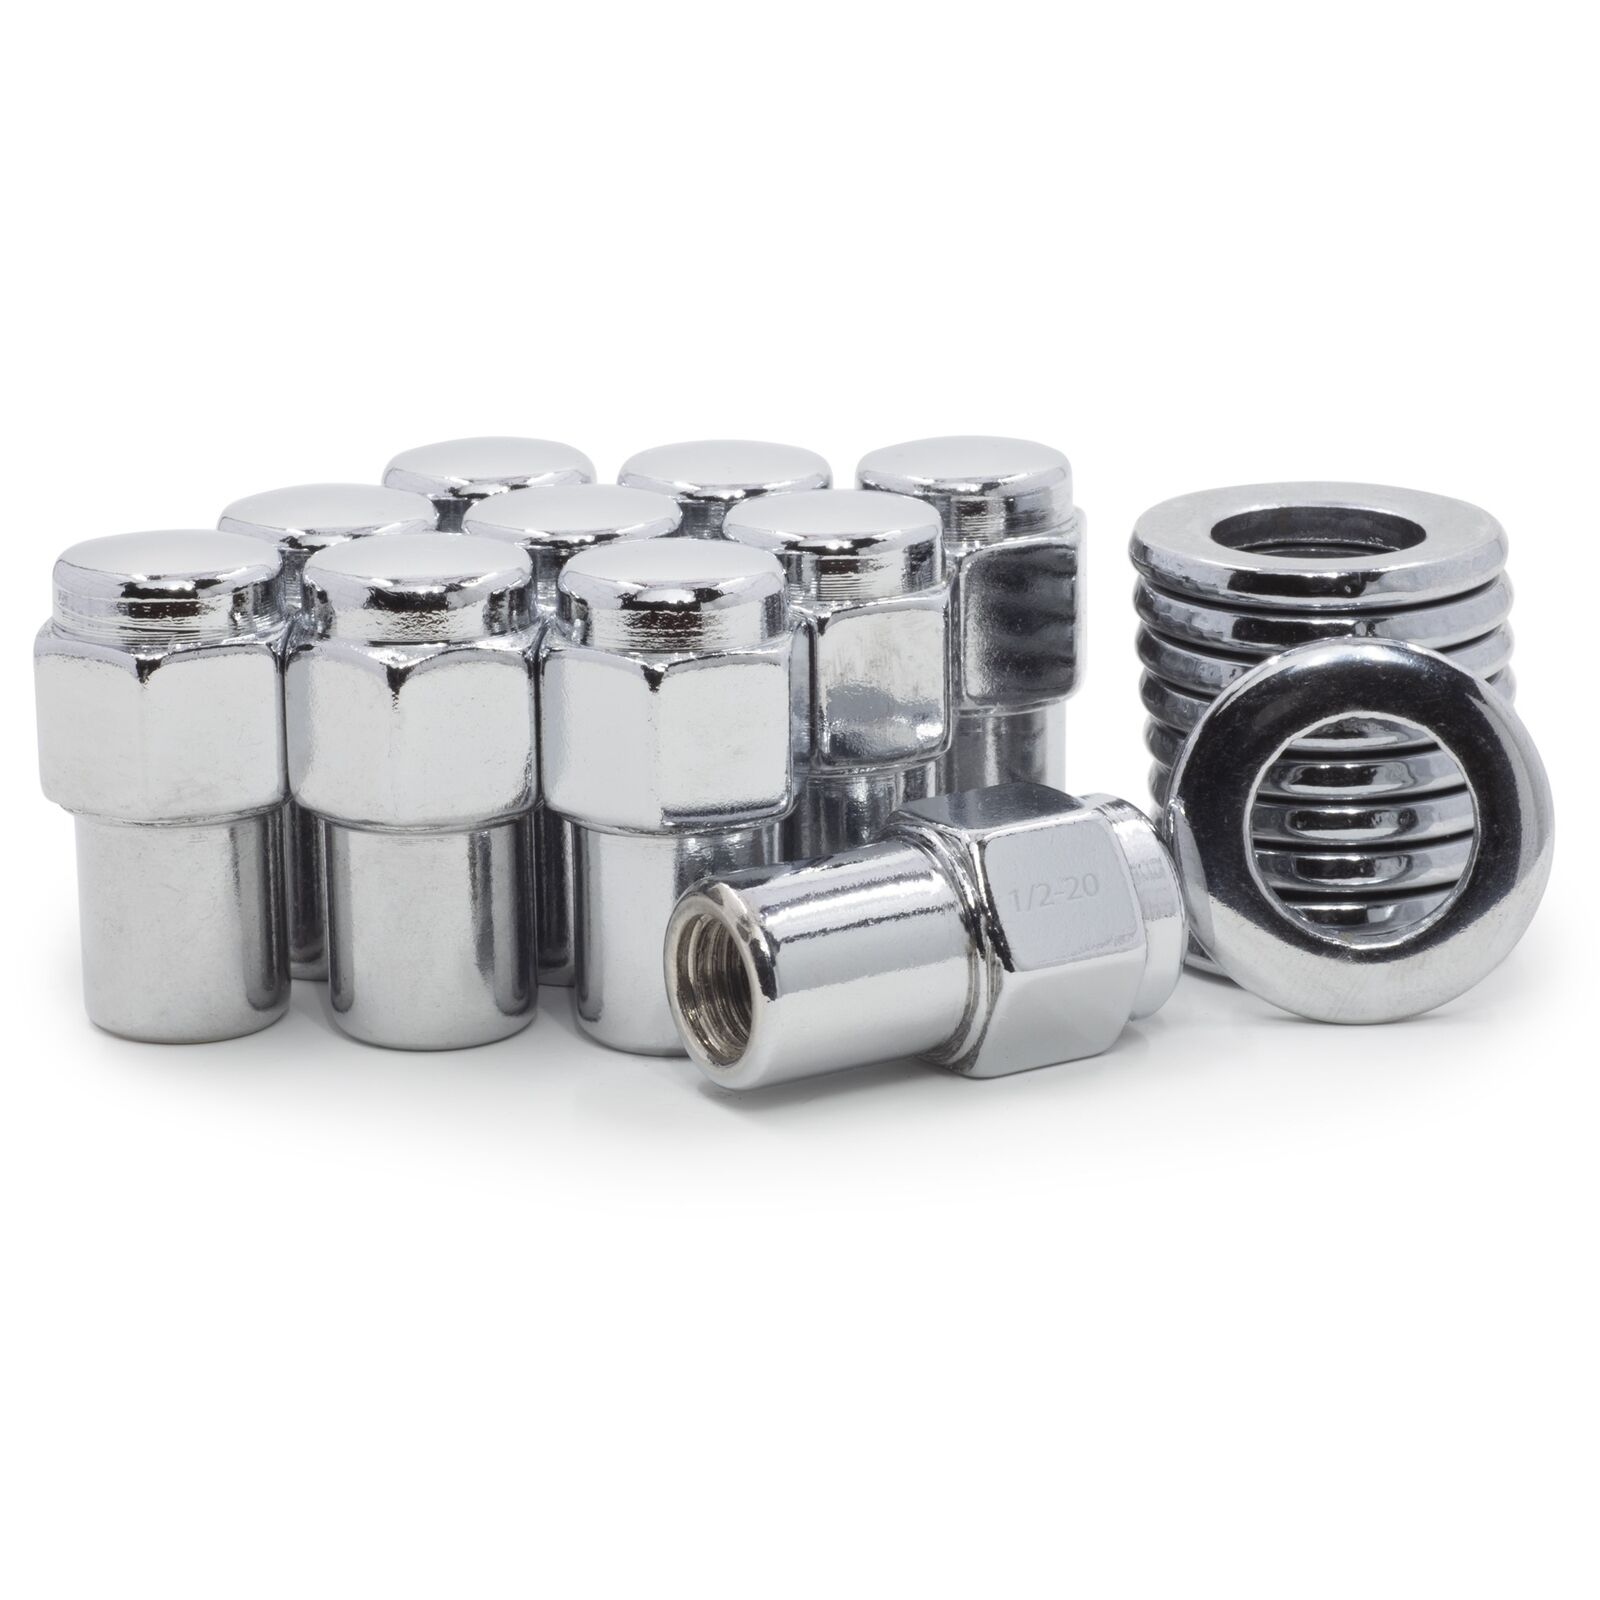 10 Lug Nuts 12x1.5 Chrome Open End Mag .75 Shank Standard Washers